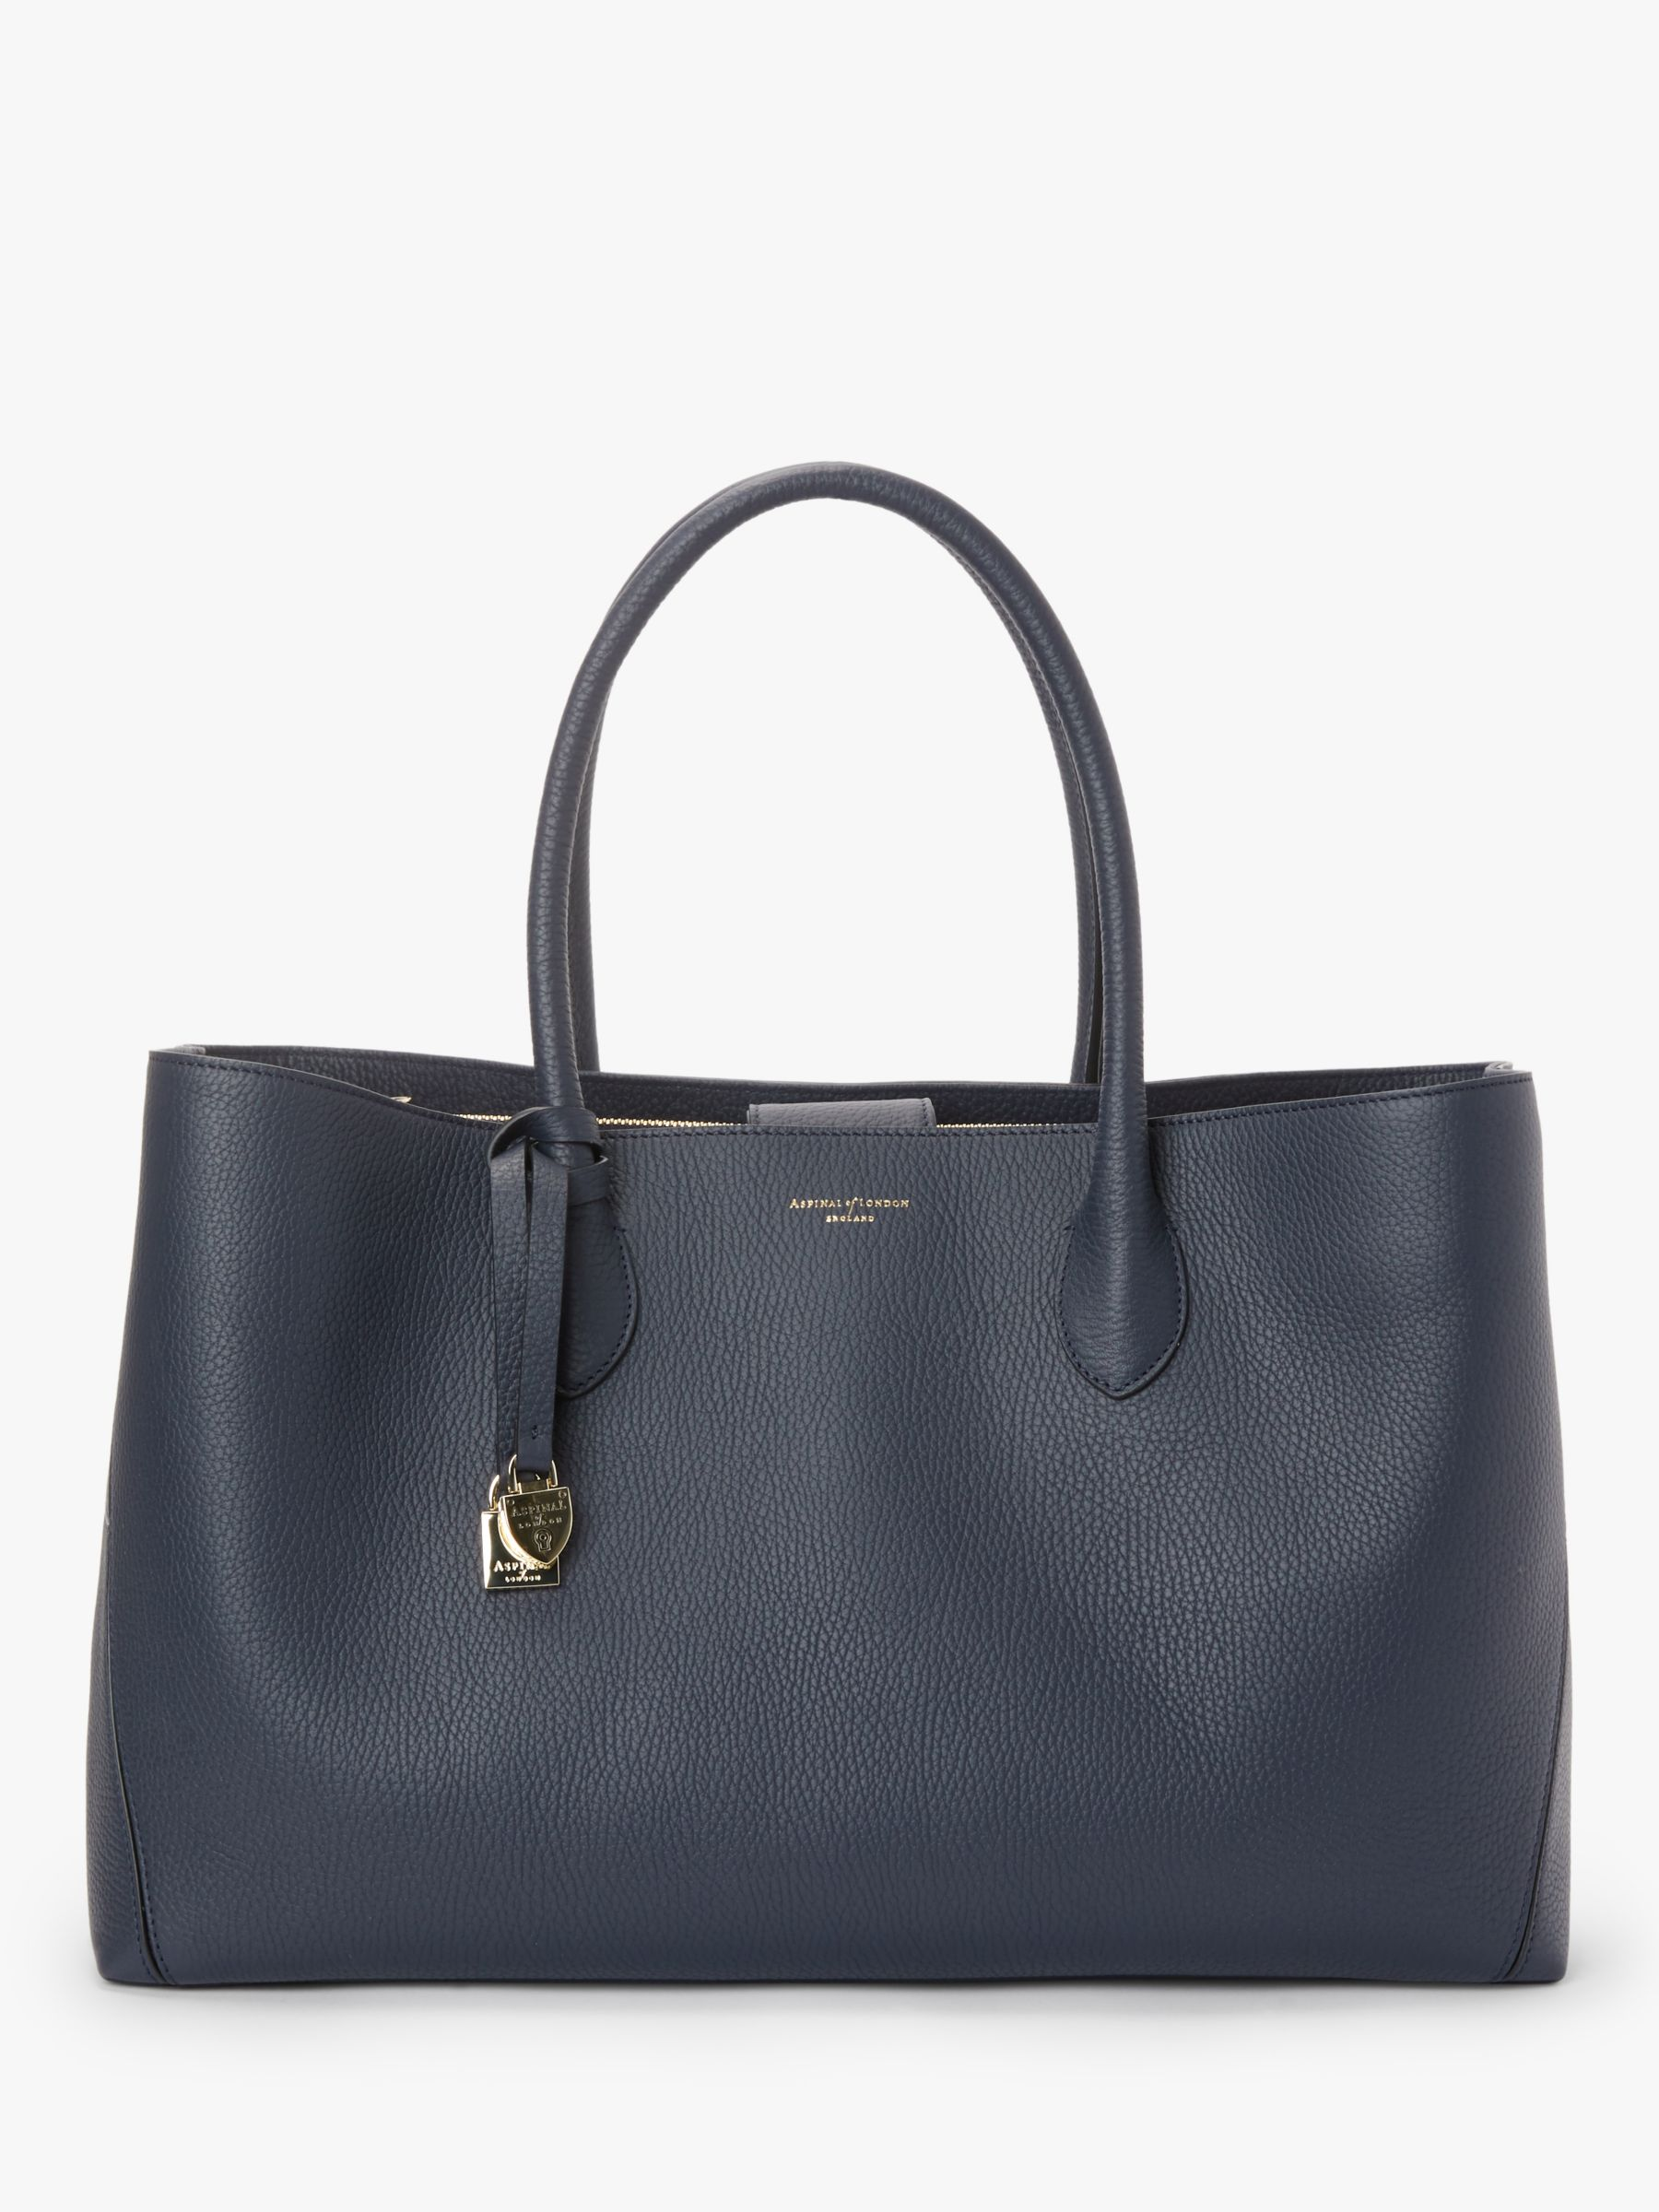 45c6d9725d2 Aspinal of London The Oversized London Leather Tote Bag, Navy